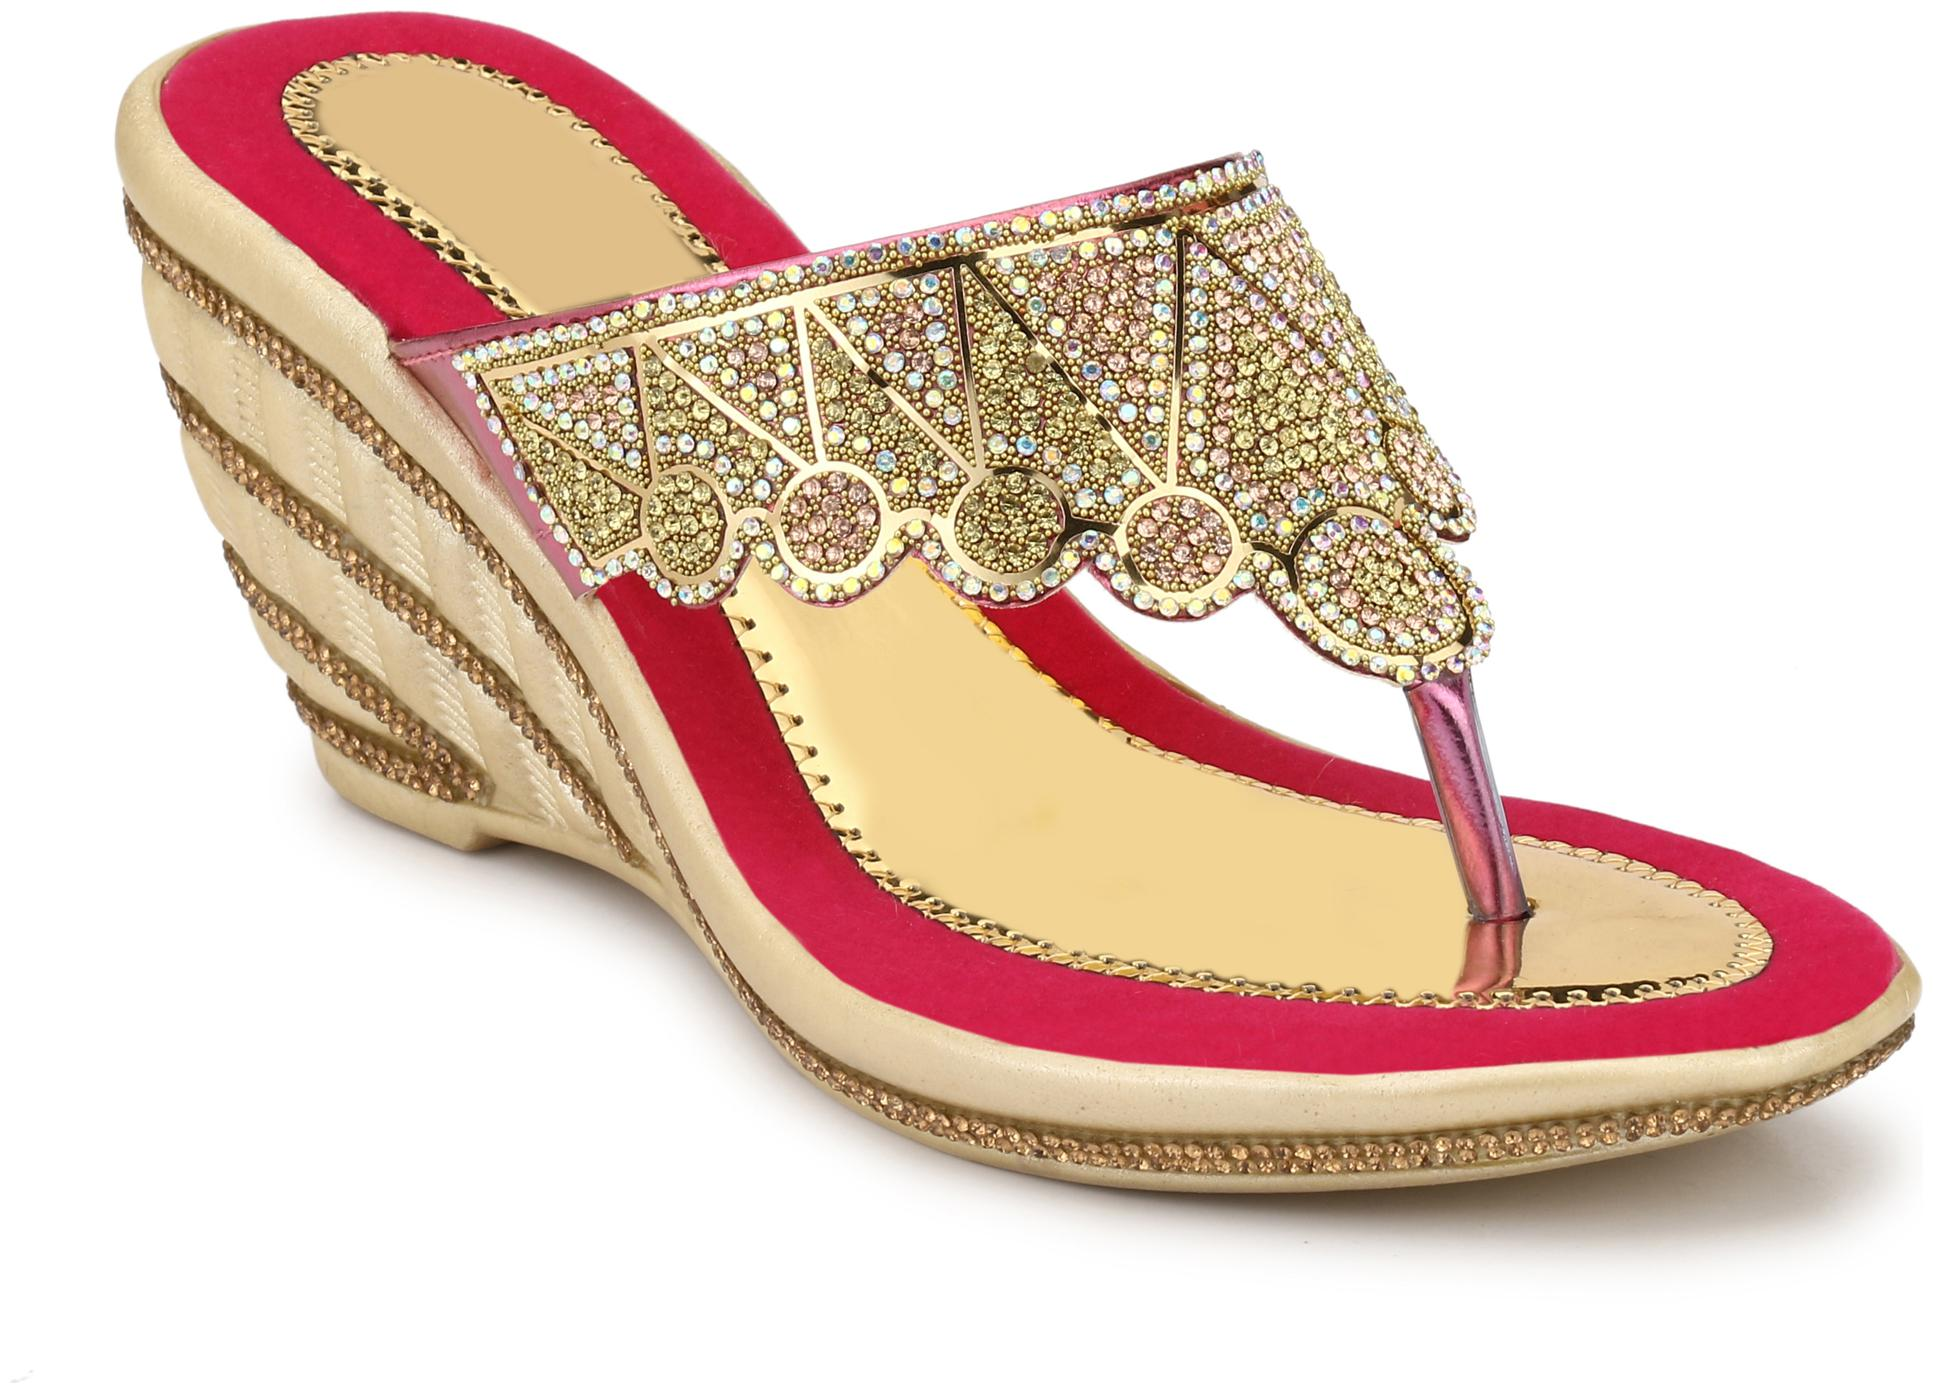 MGZ Wedges For Women   Gold   1 Pair by Himanshi Creations